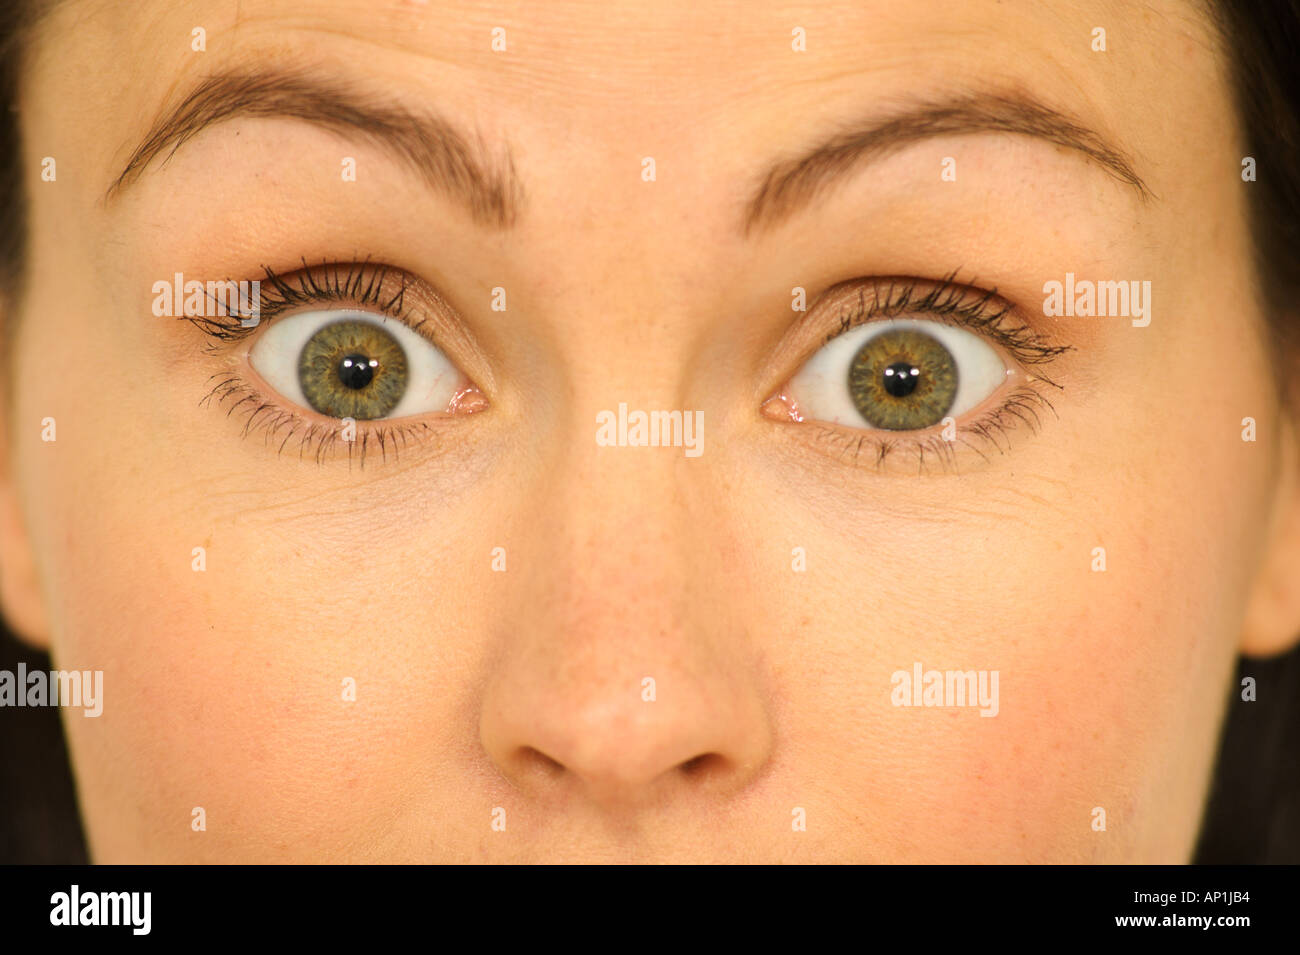 https://c8.alamy.com/comp/AP1JB4/woman-with-eyes-wide-open-in-surprise-or-shock-AP1JB4.jpg